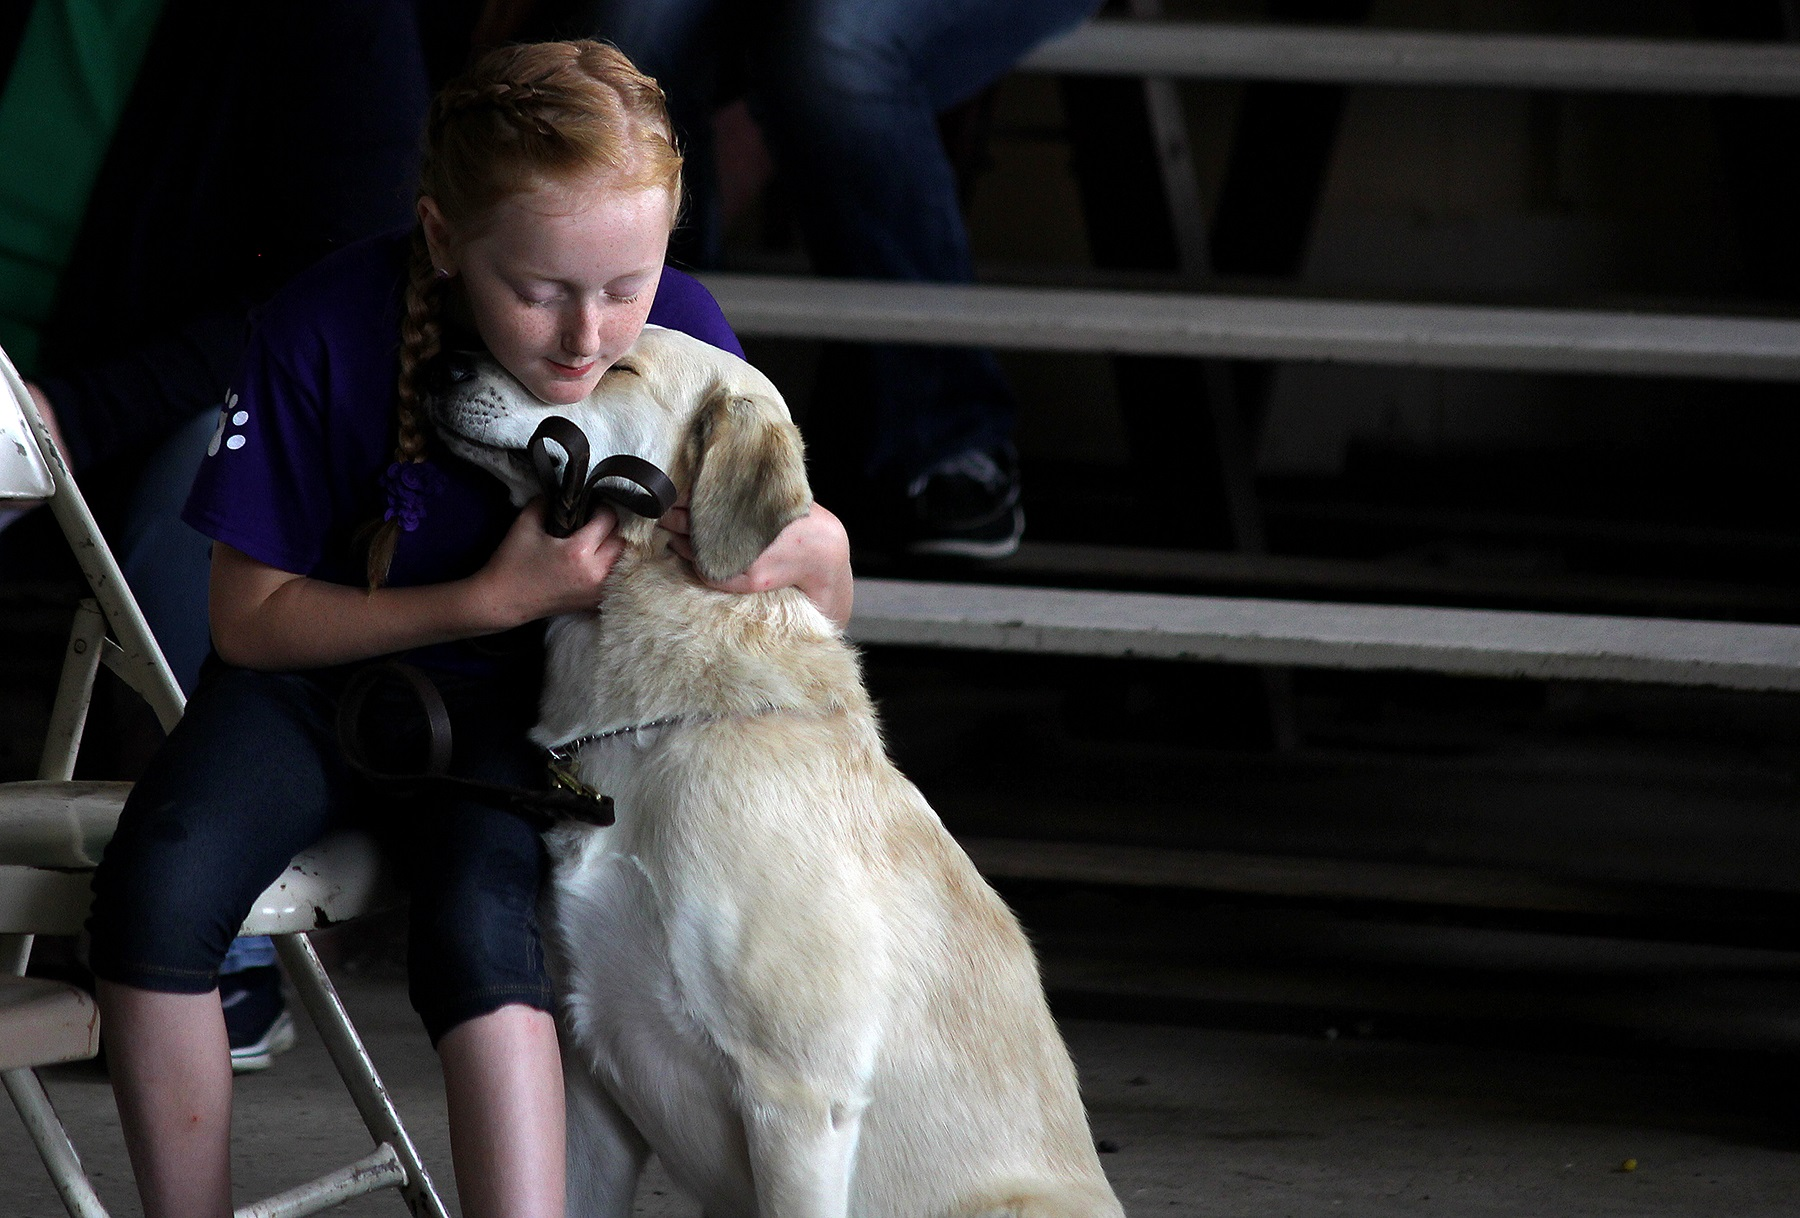 Each July, Henry County kids converge on Memorial Park in New Castle, where the 4-H fair plays out. A variety of farm animals are shown and cared for. But, domestic pets are also points of pride for youngsters. After the annual dog show, a yellow Labrador retriever gets a hug of appreciation for its owner.